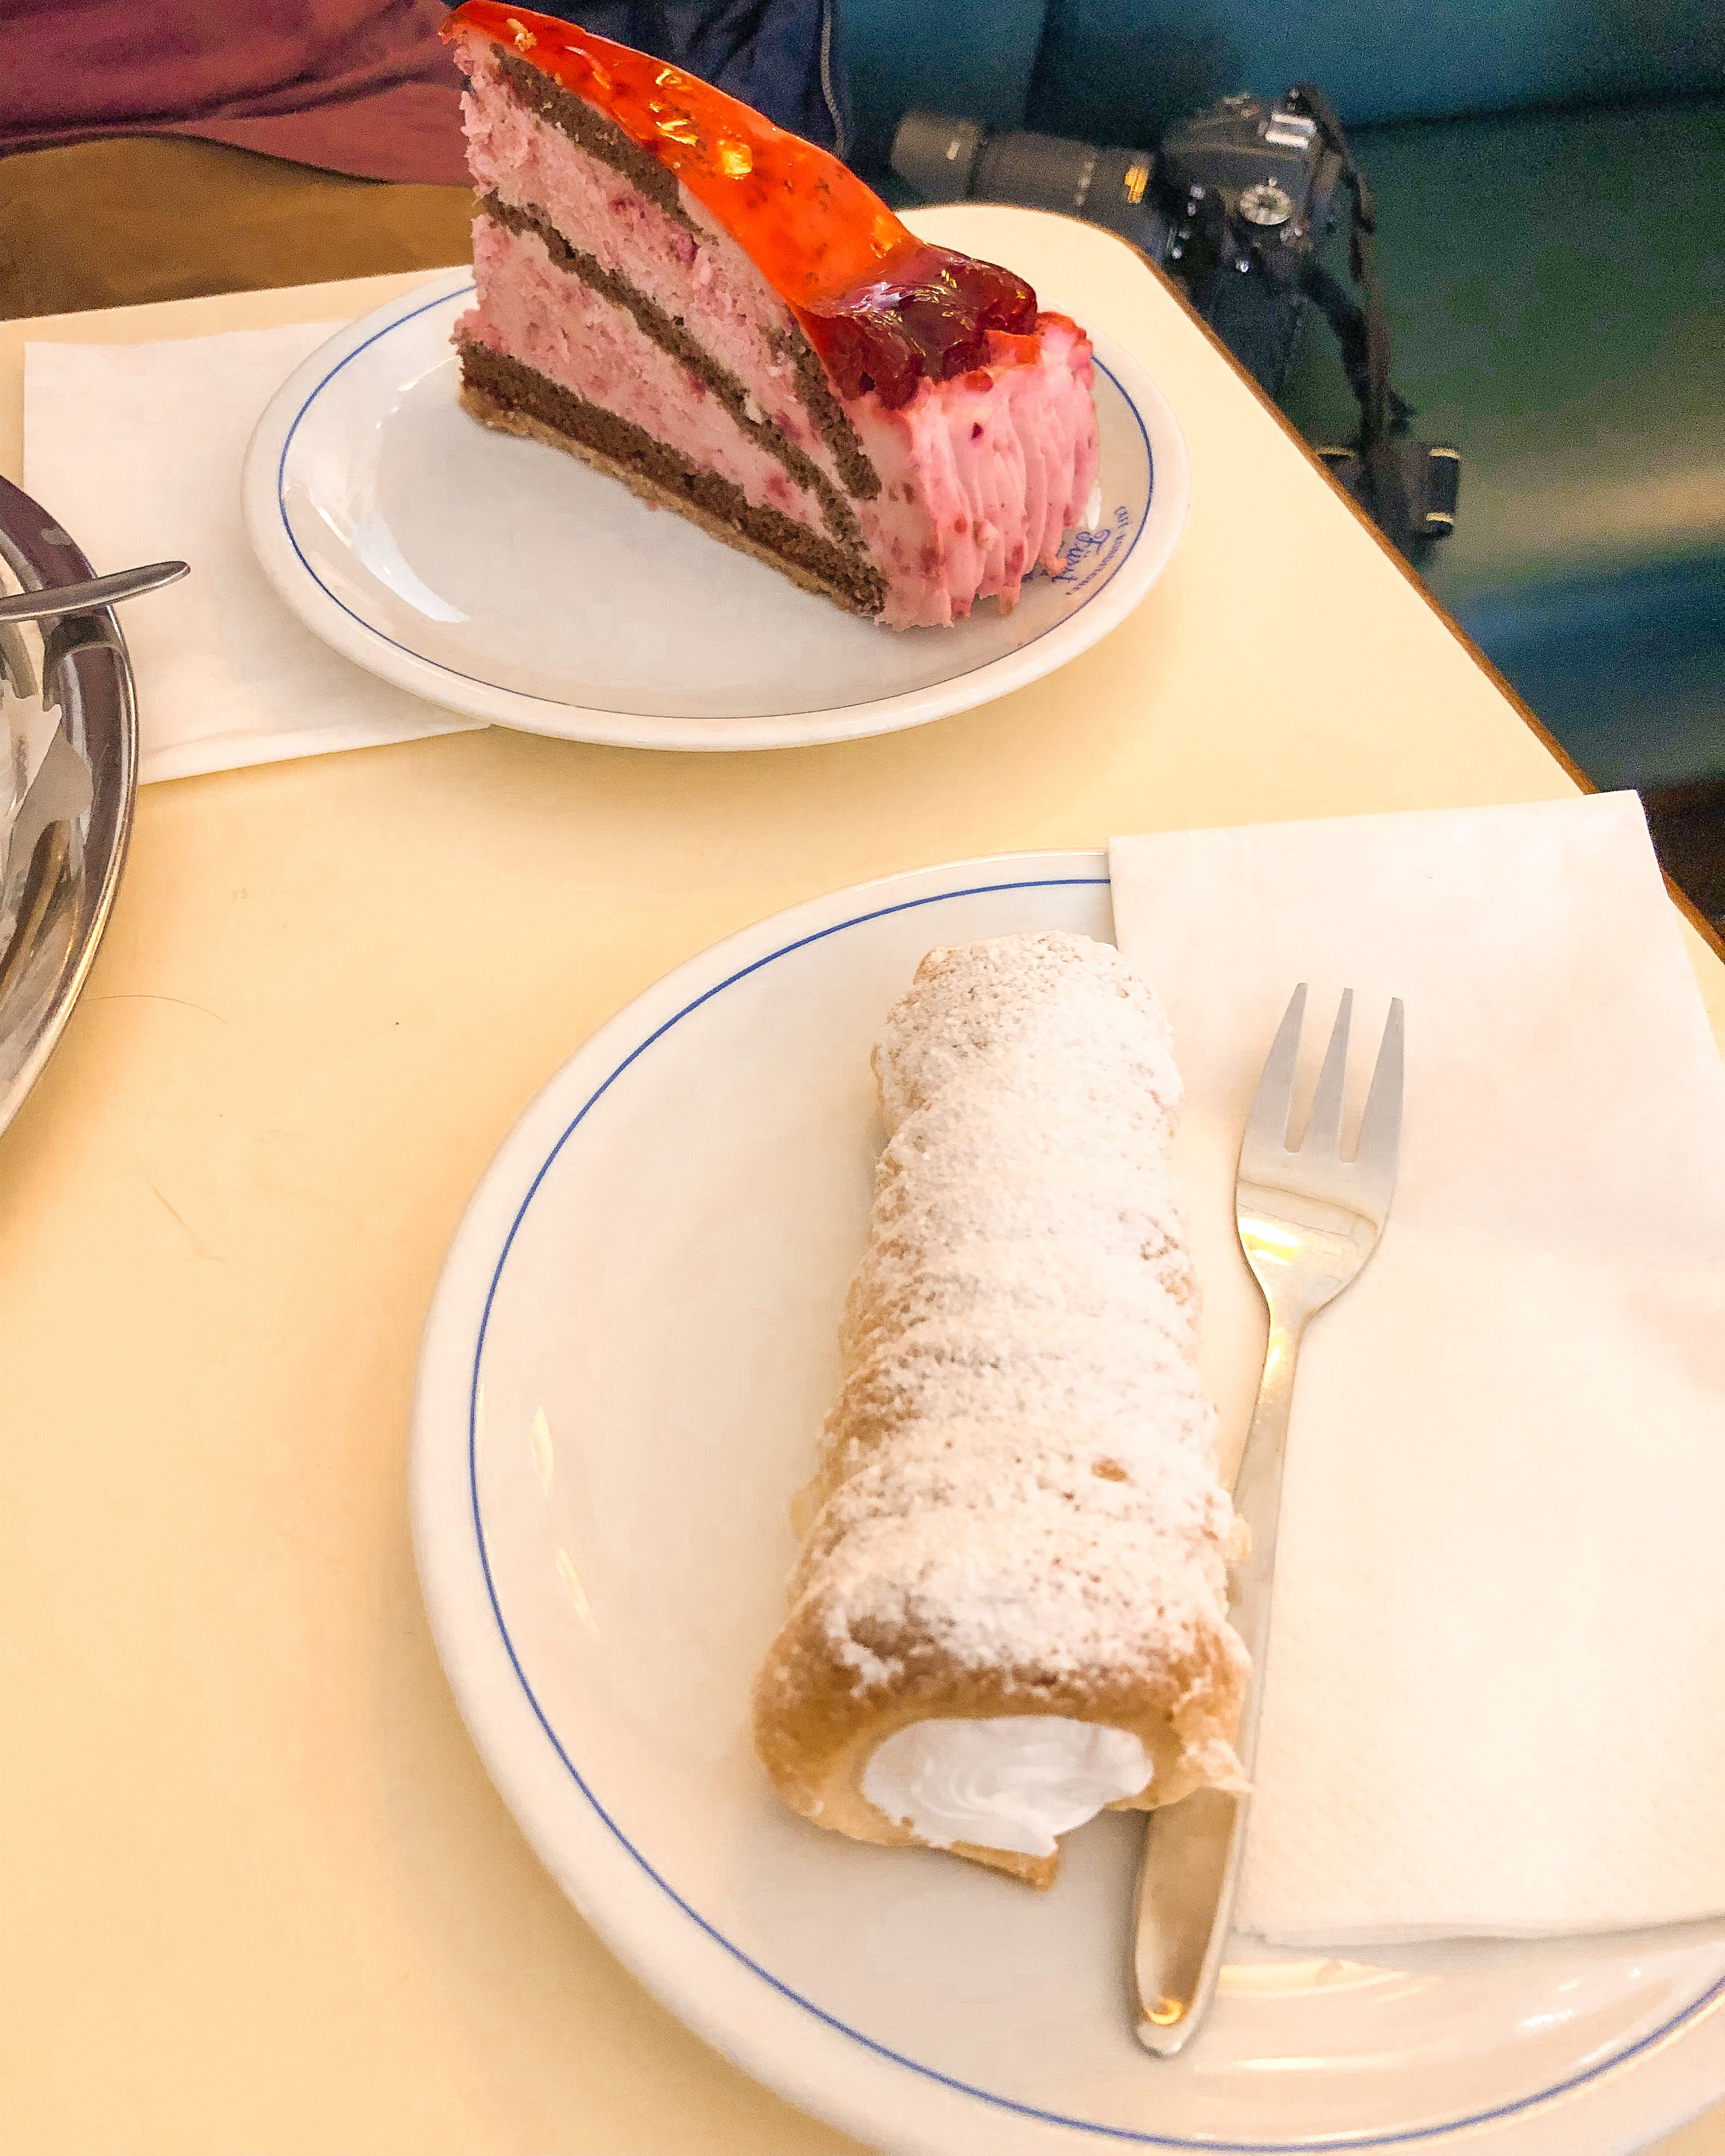 This deliciously creamy filled pastry, and the decadent strawberry cake were both gone in 2 minutes flat.